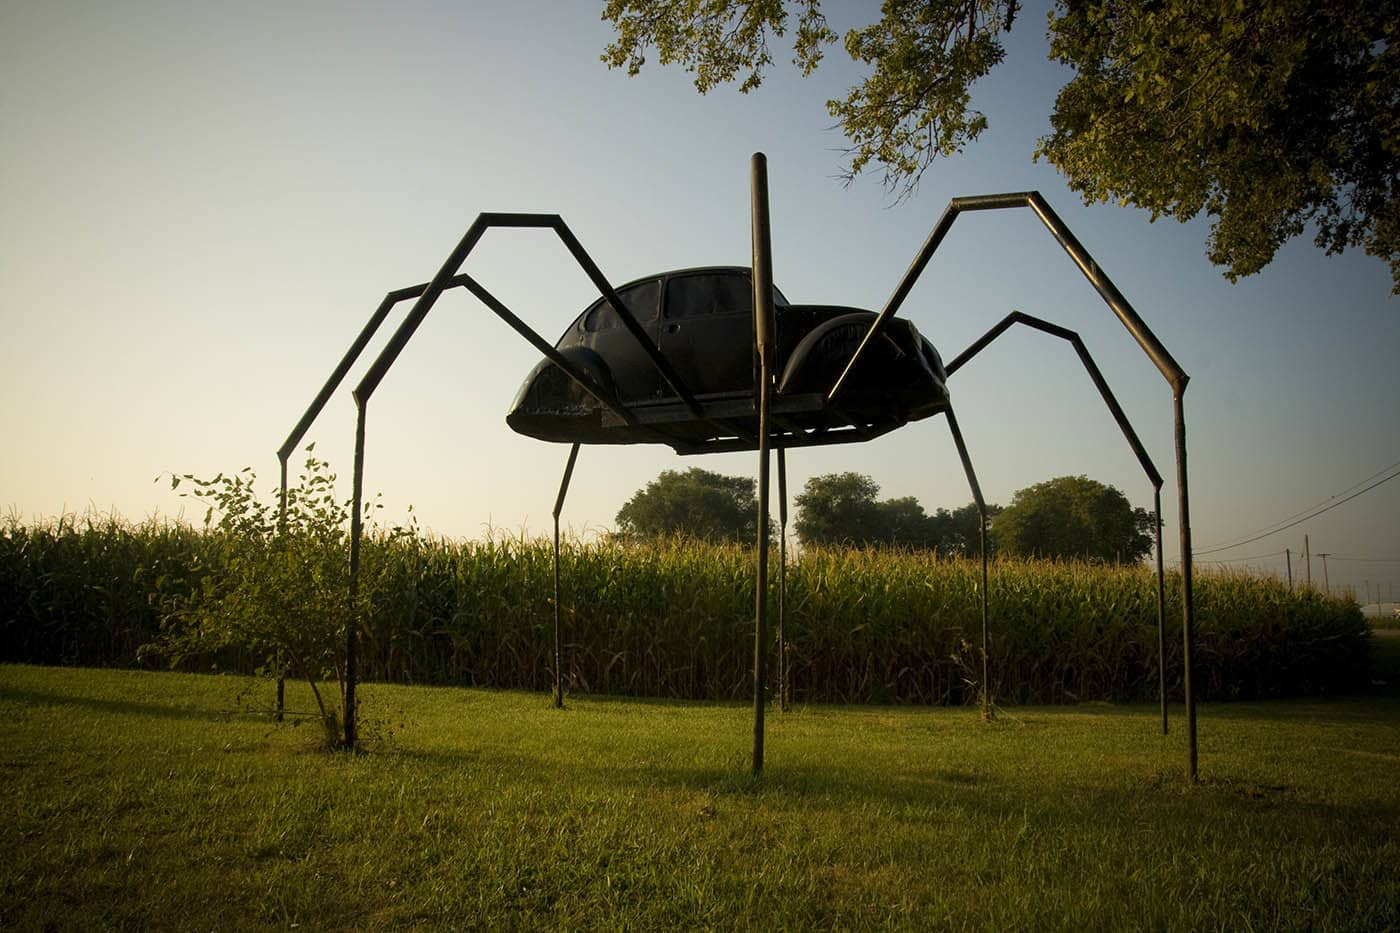 Spider Made Out of a Volkswagen roadside attraction in Avoca, Iowa. Labor Day Chicago to Mount Rushmore Road Trip.